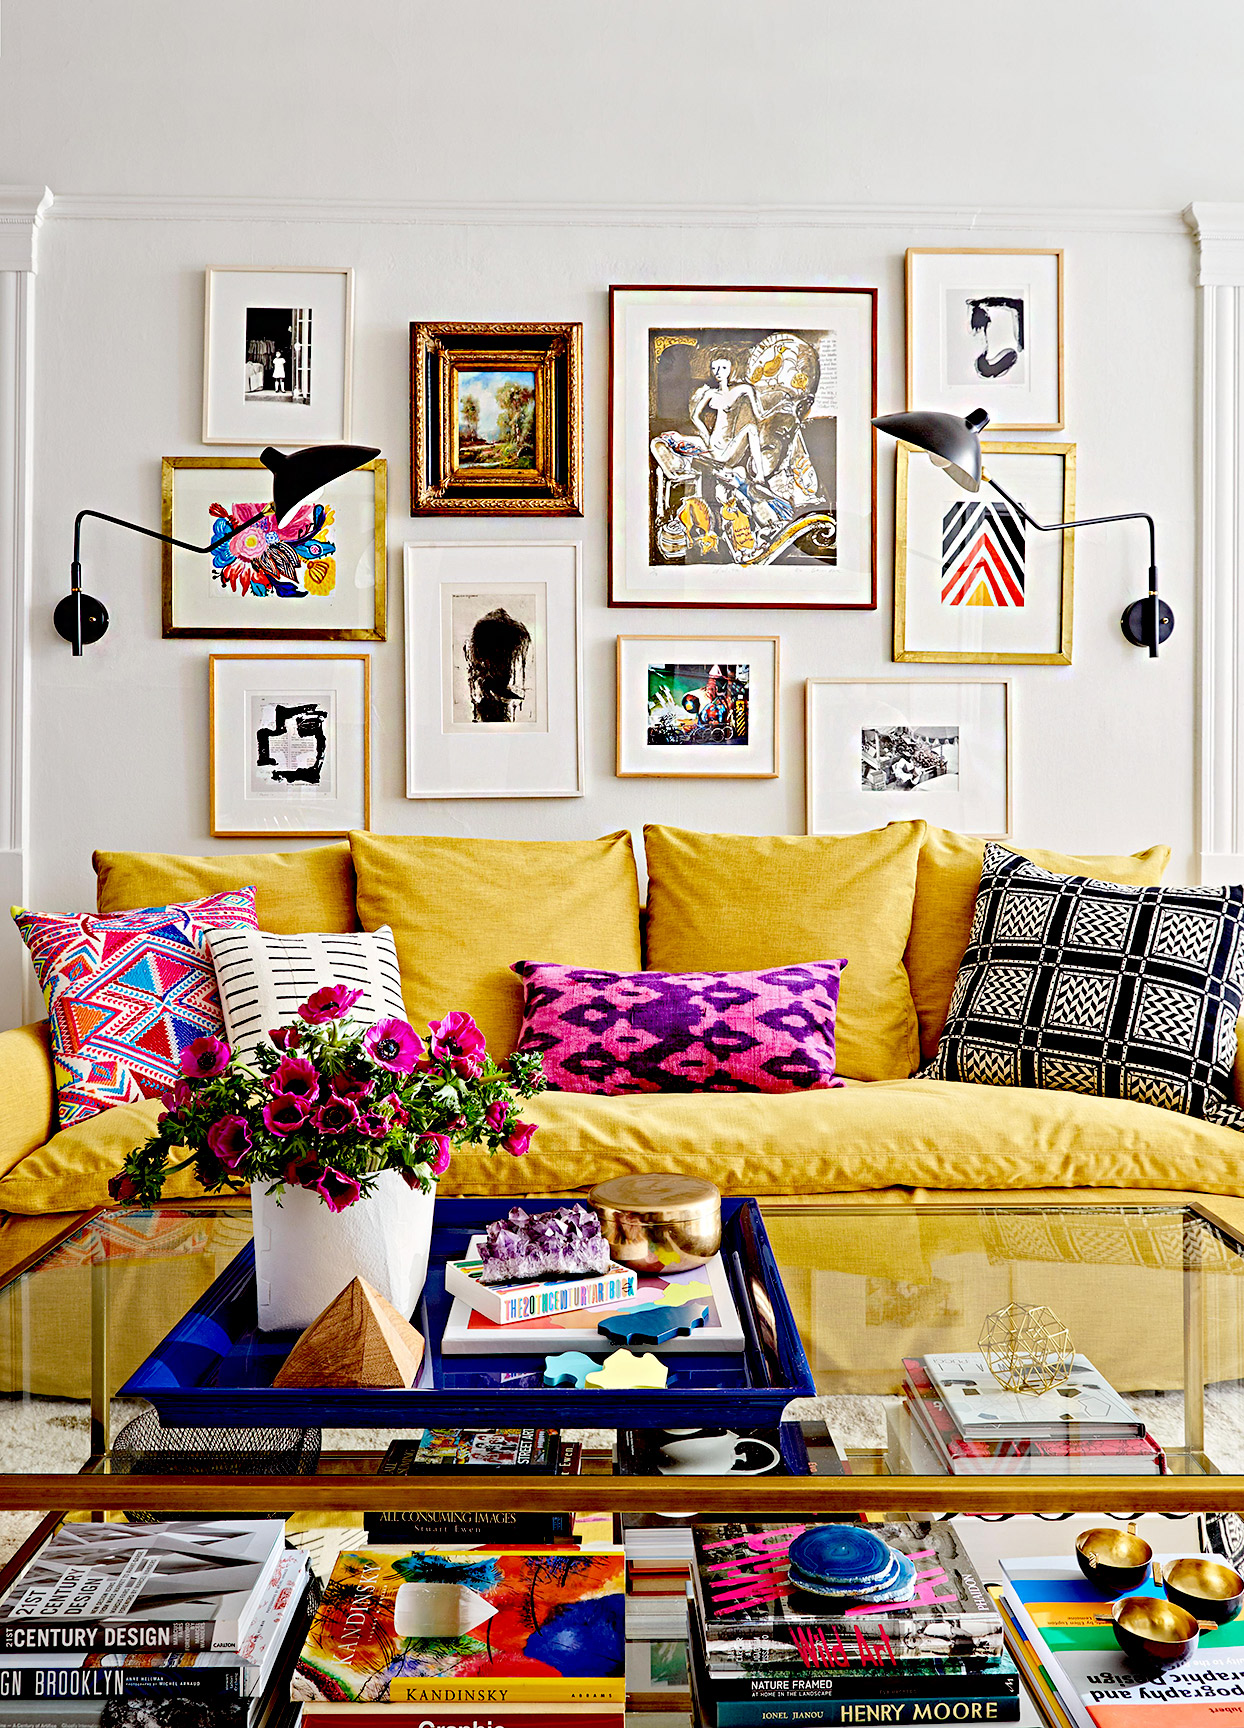 Living room with books and artwork